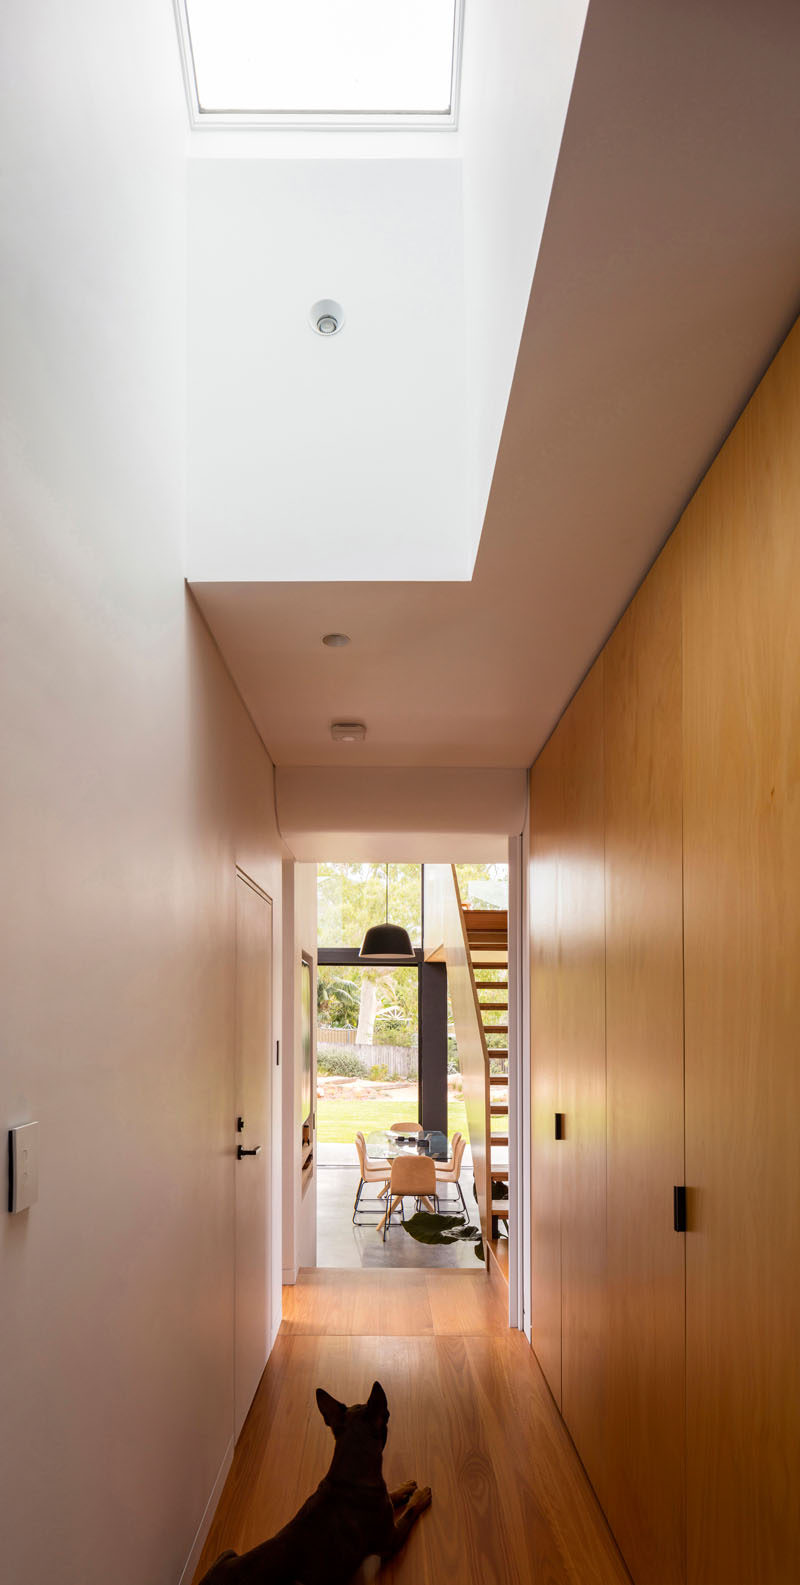 This house features a hallway lined with wood closets that leads to the new extension, and a skylight adds natural light to the interior. #Hallway #InteriorDesign #Skylight